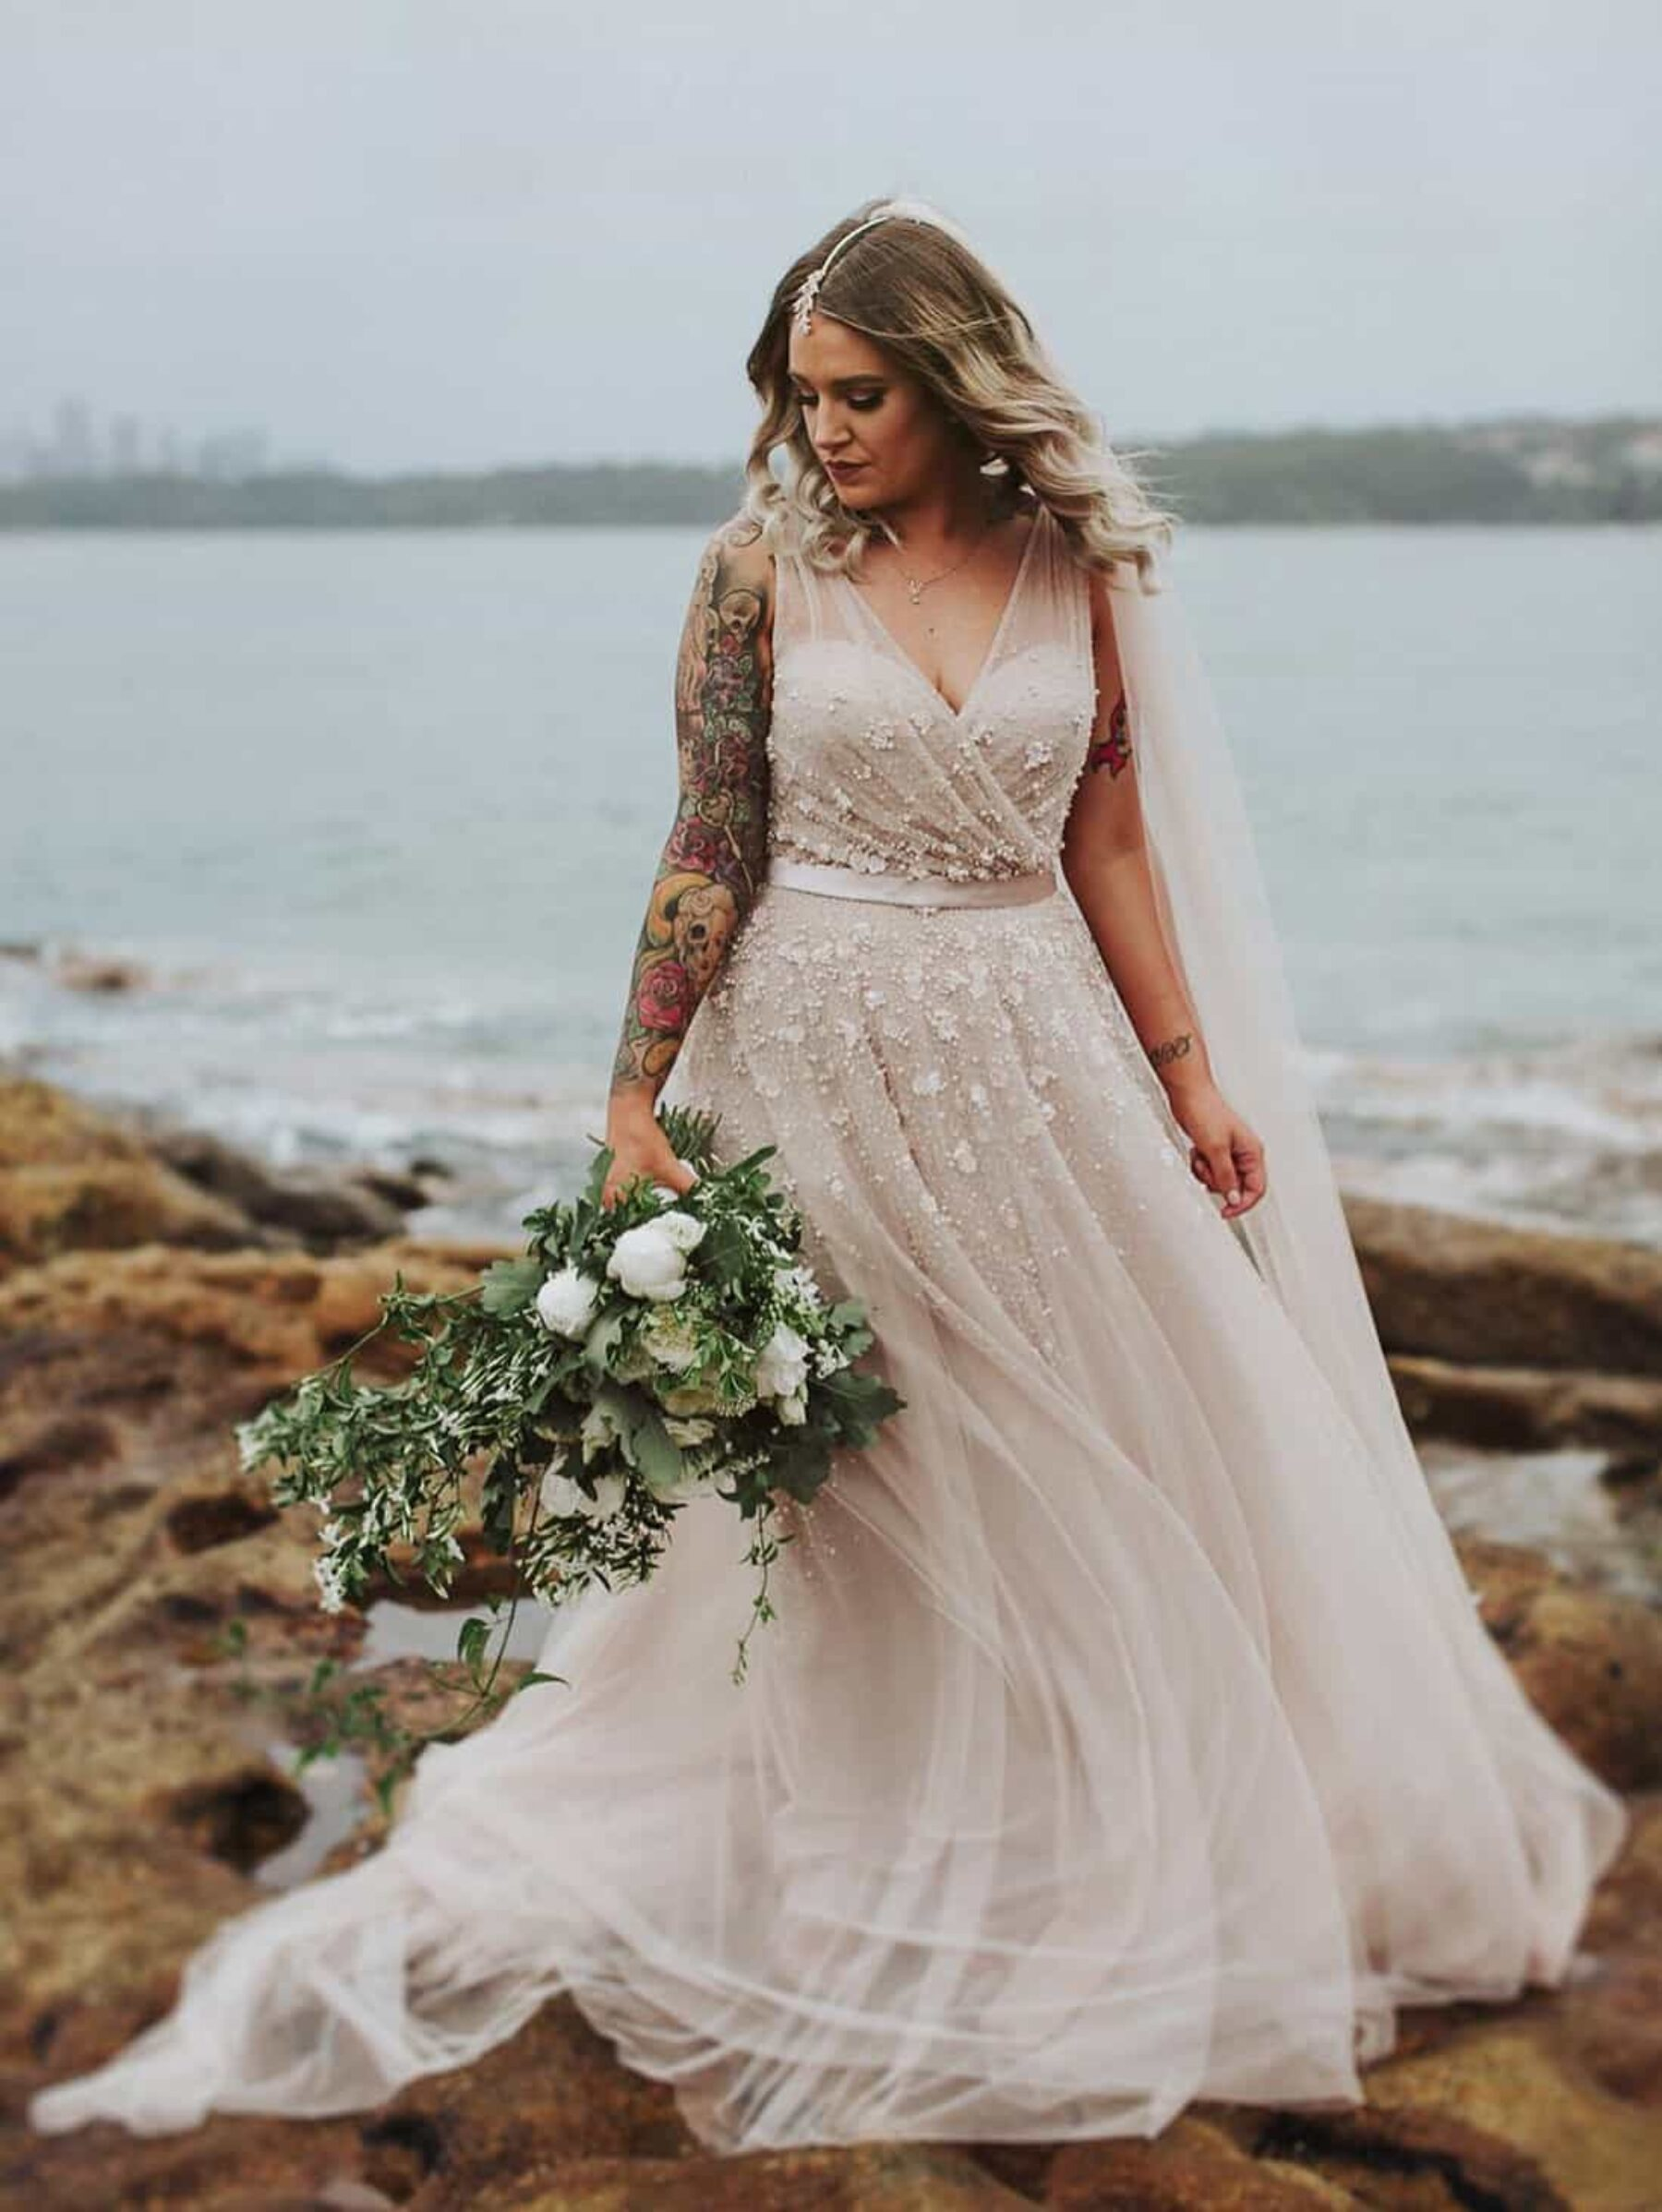 blush wedding dress by Wendy Makin